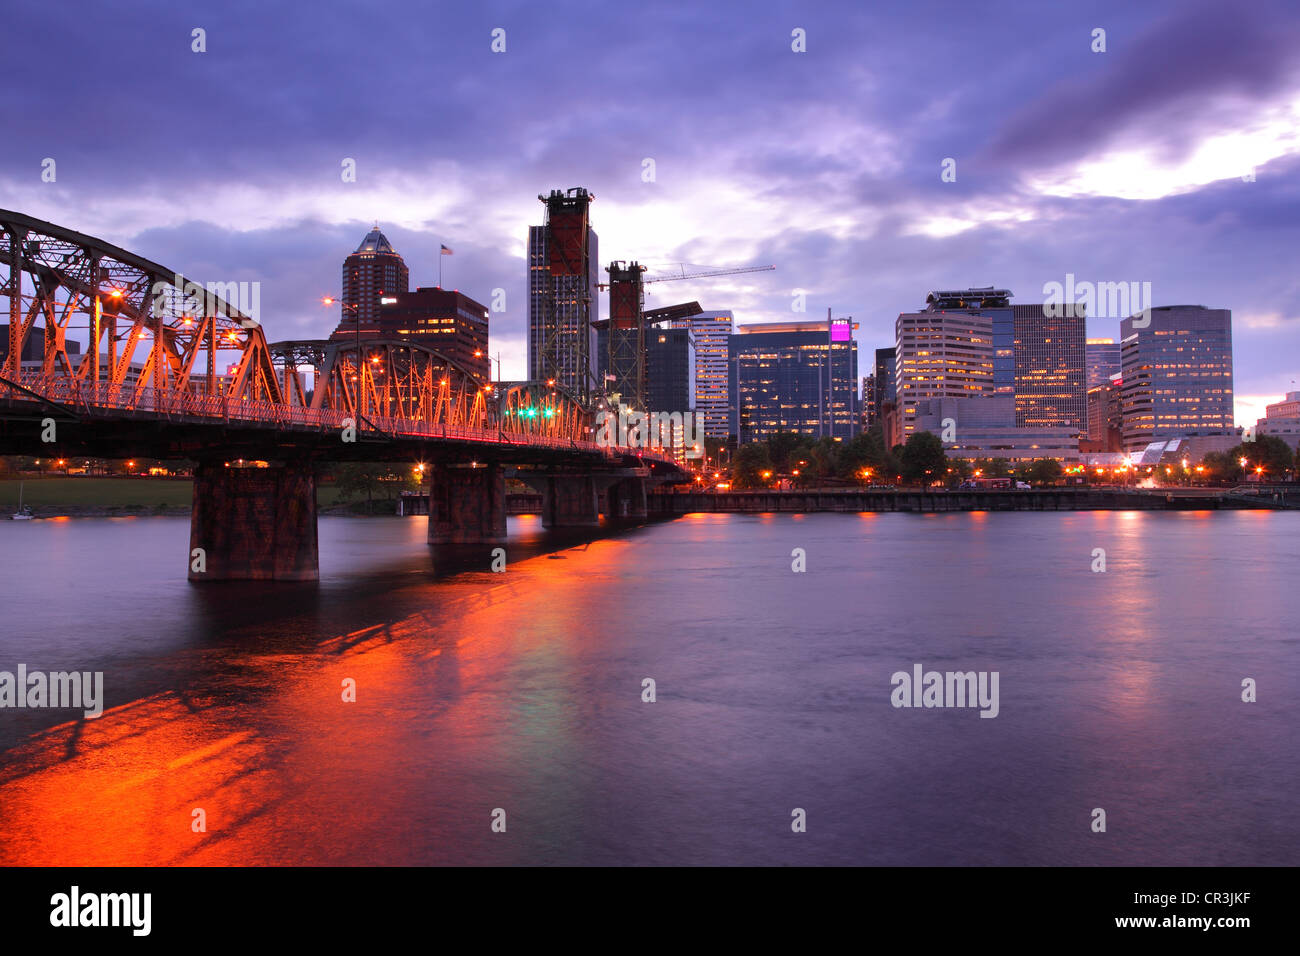 Portland Oregon skyline at dusk - Stock Image